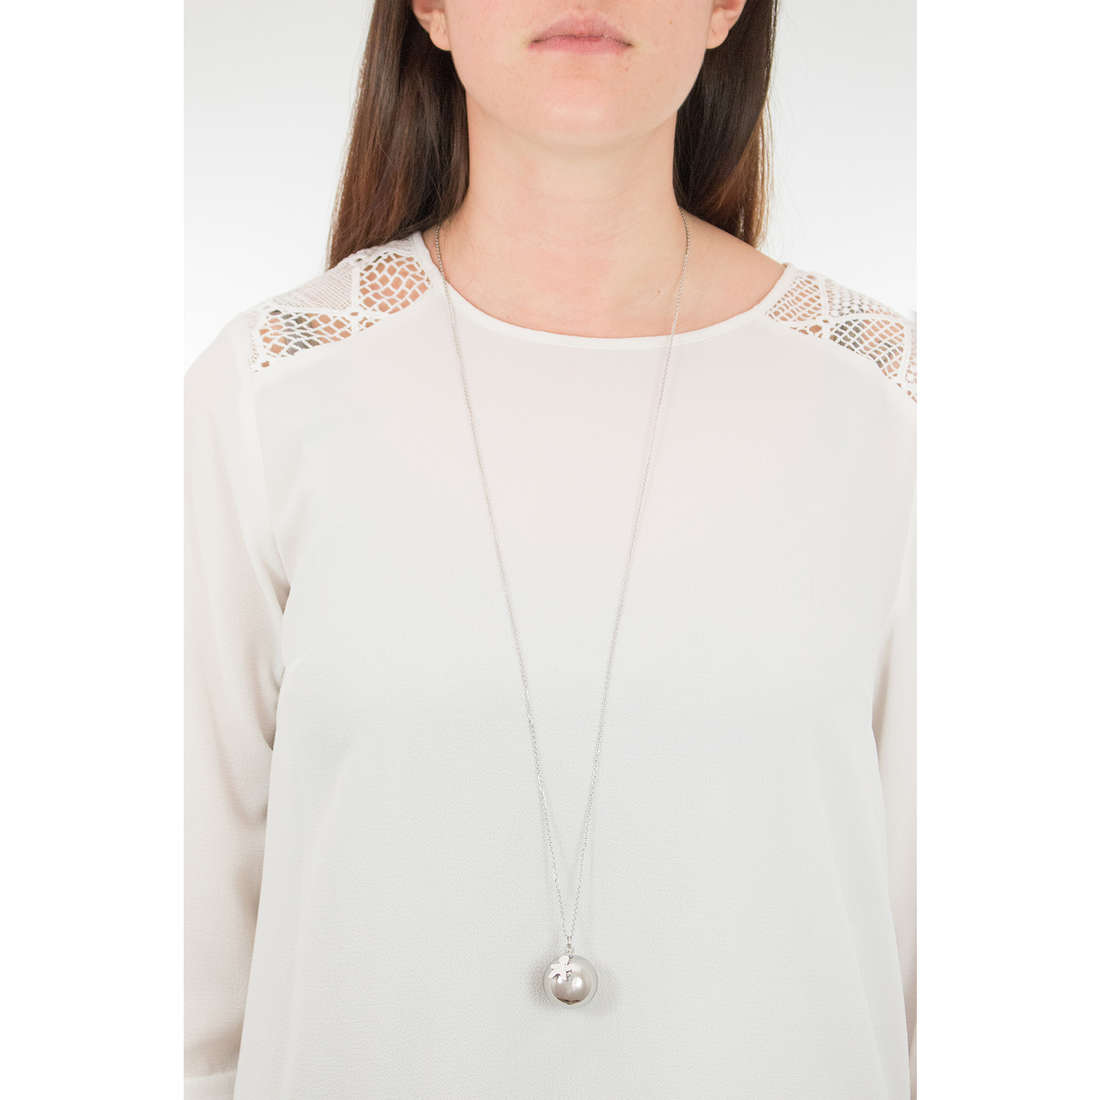 Luca Barra necklaces woman LBCK770 indosso